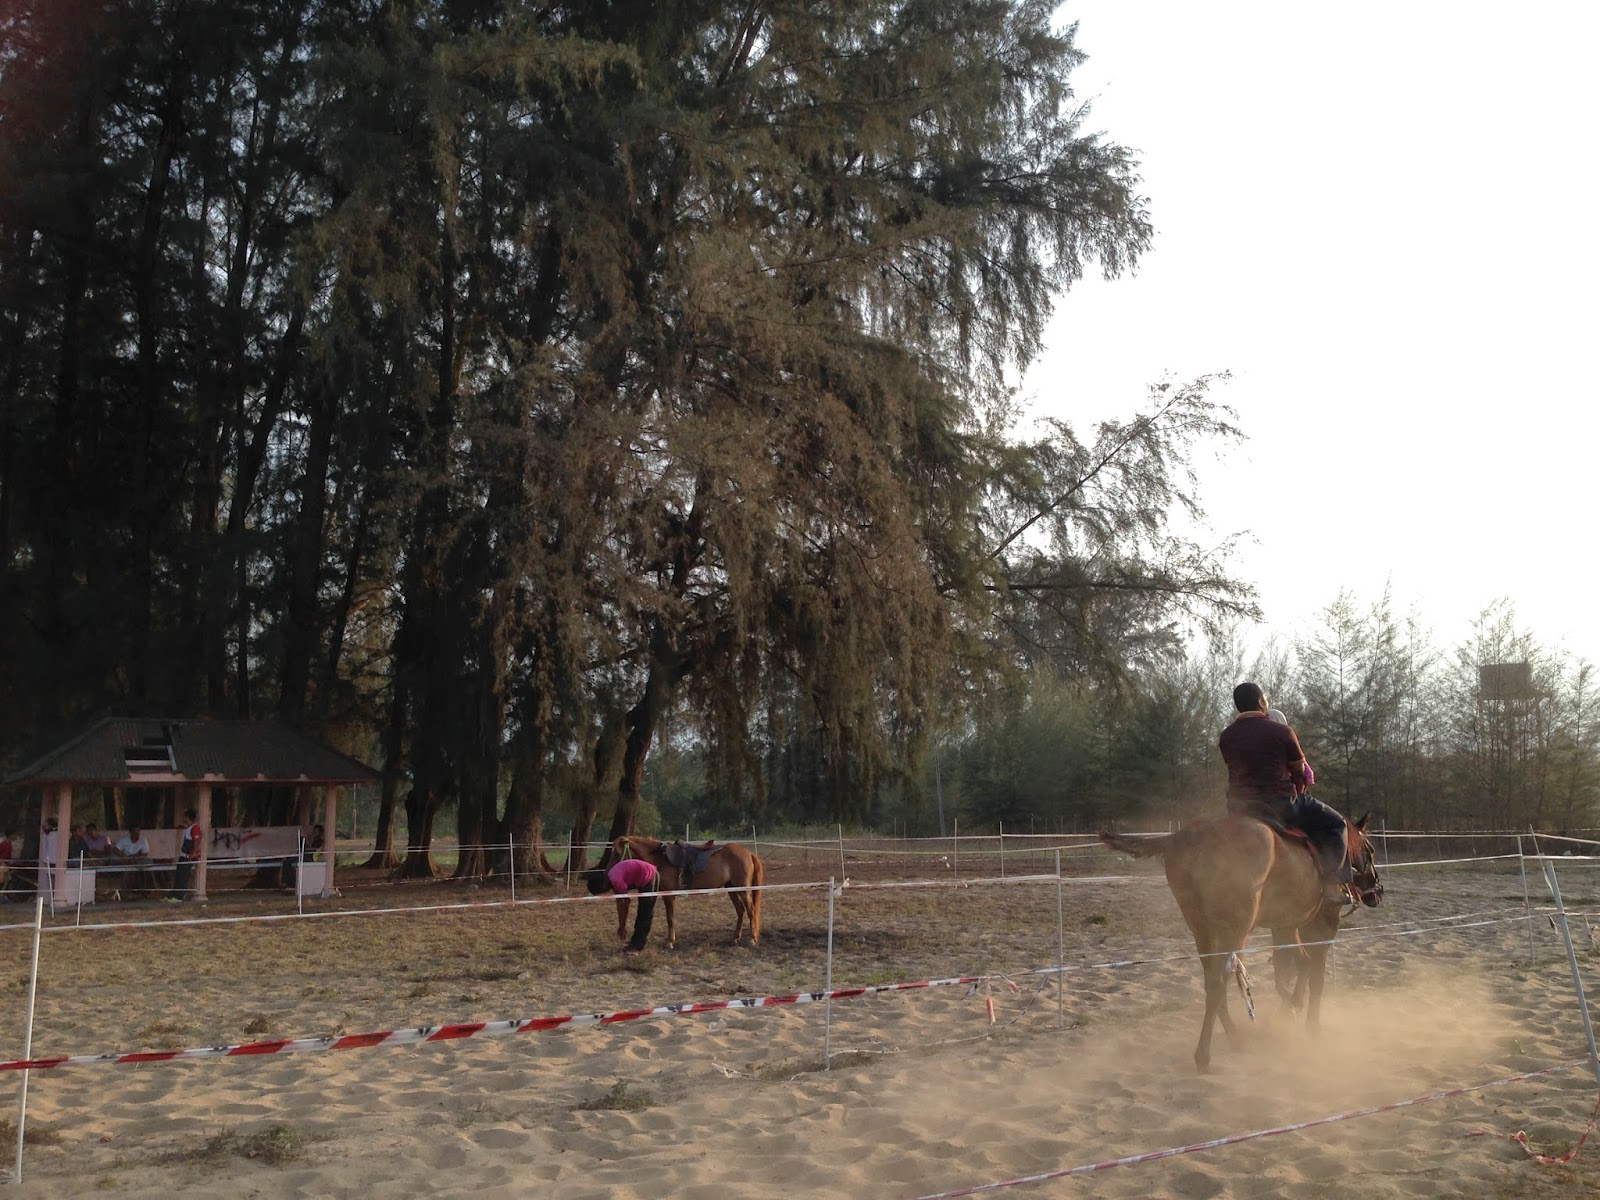 Horse riding at Pantai Sri Tujuh